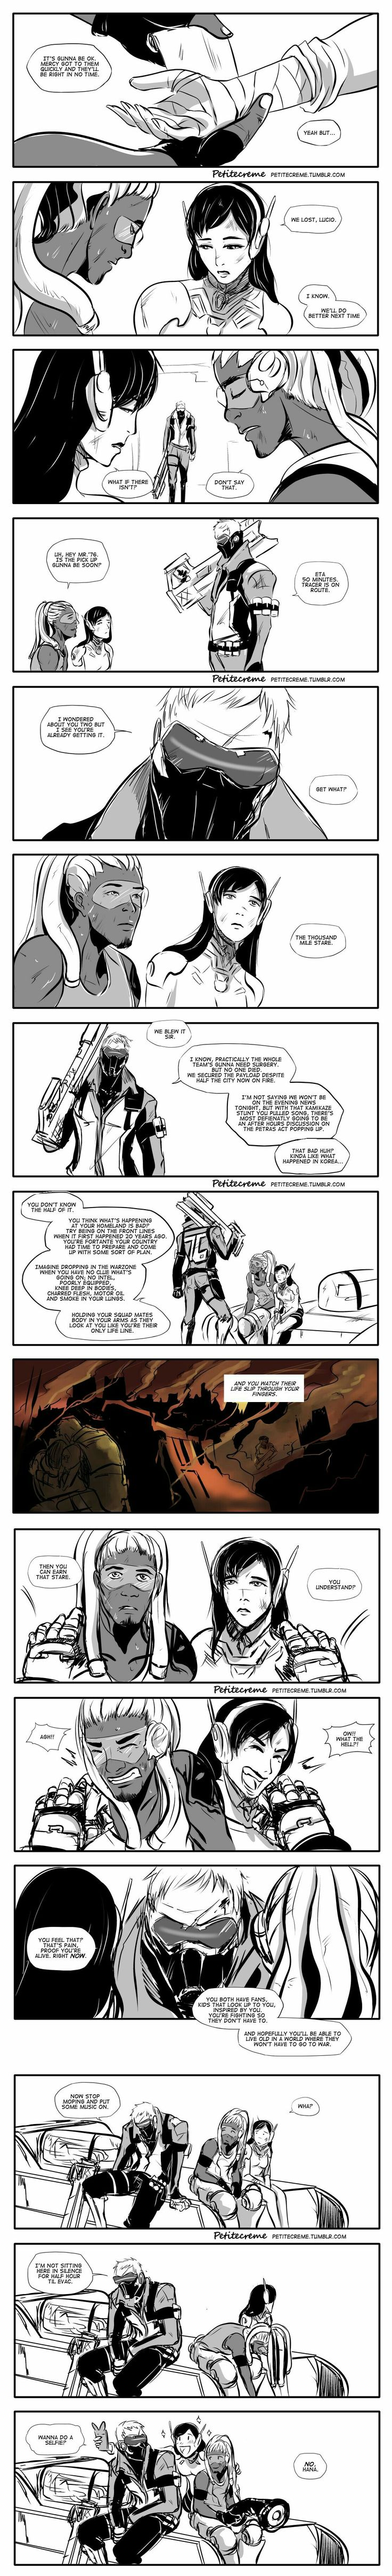 Such a caring and supportive father. Everytime I read Overwatch comics, I can hear their voices in my mind and it makes it all the more magical :D